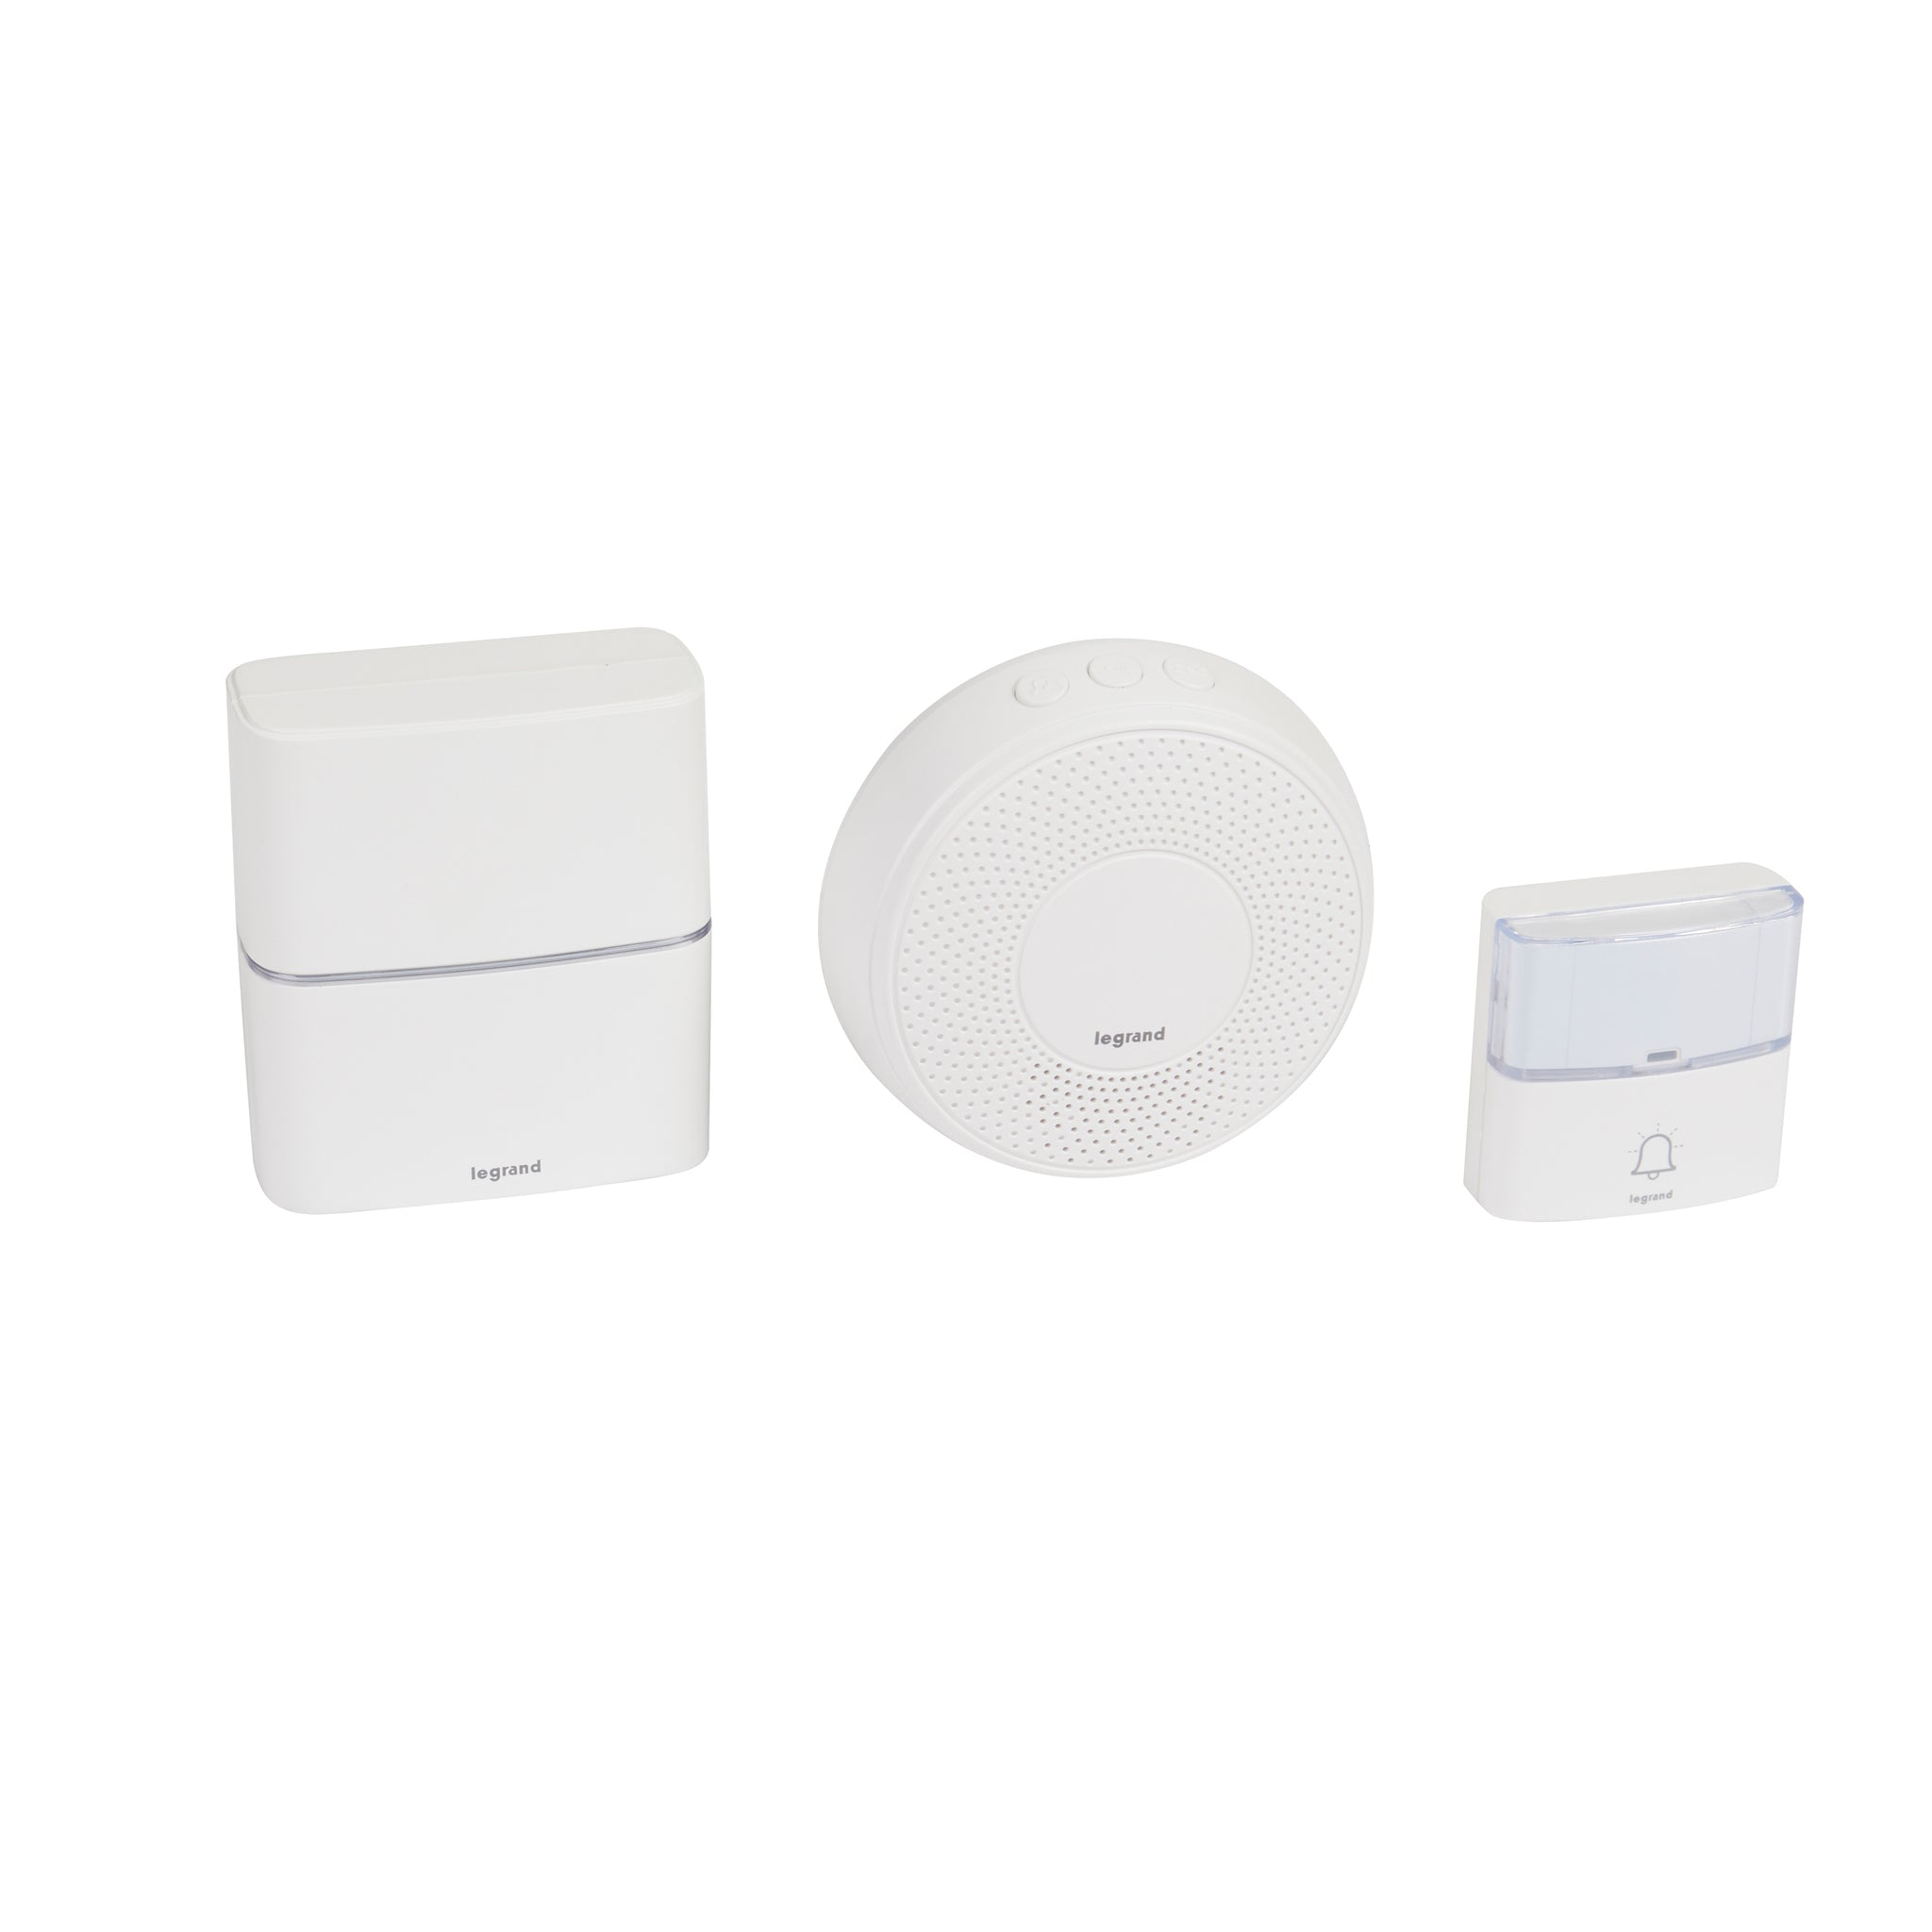 094272 KIT SONERIE WIRELESS DUBLA SERENITY 200M